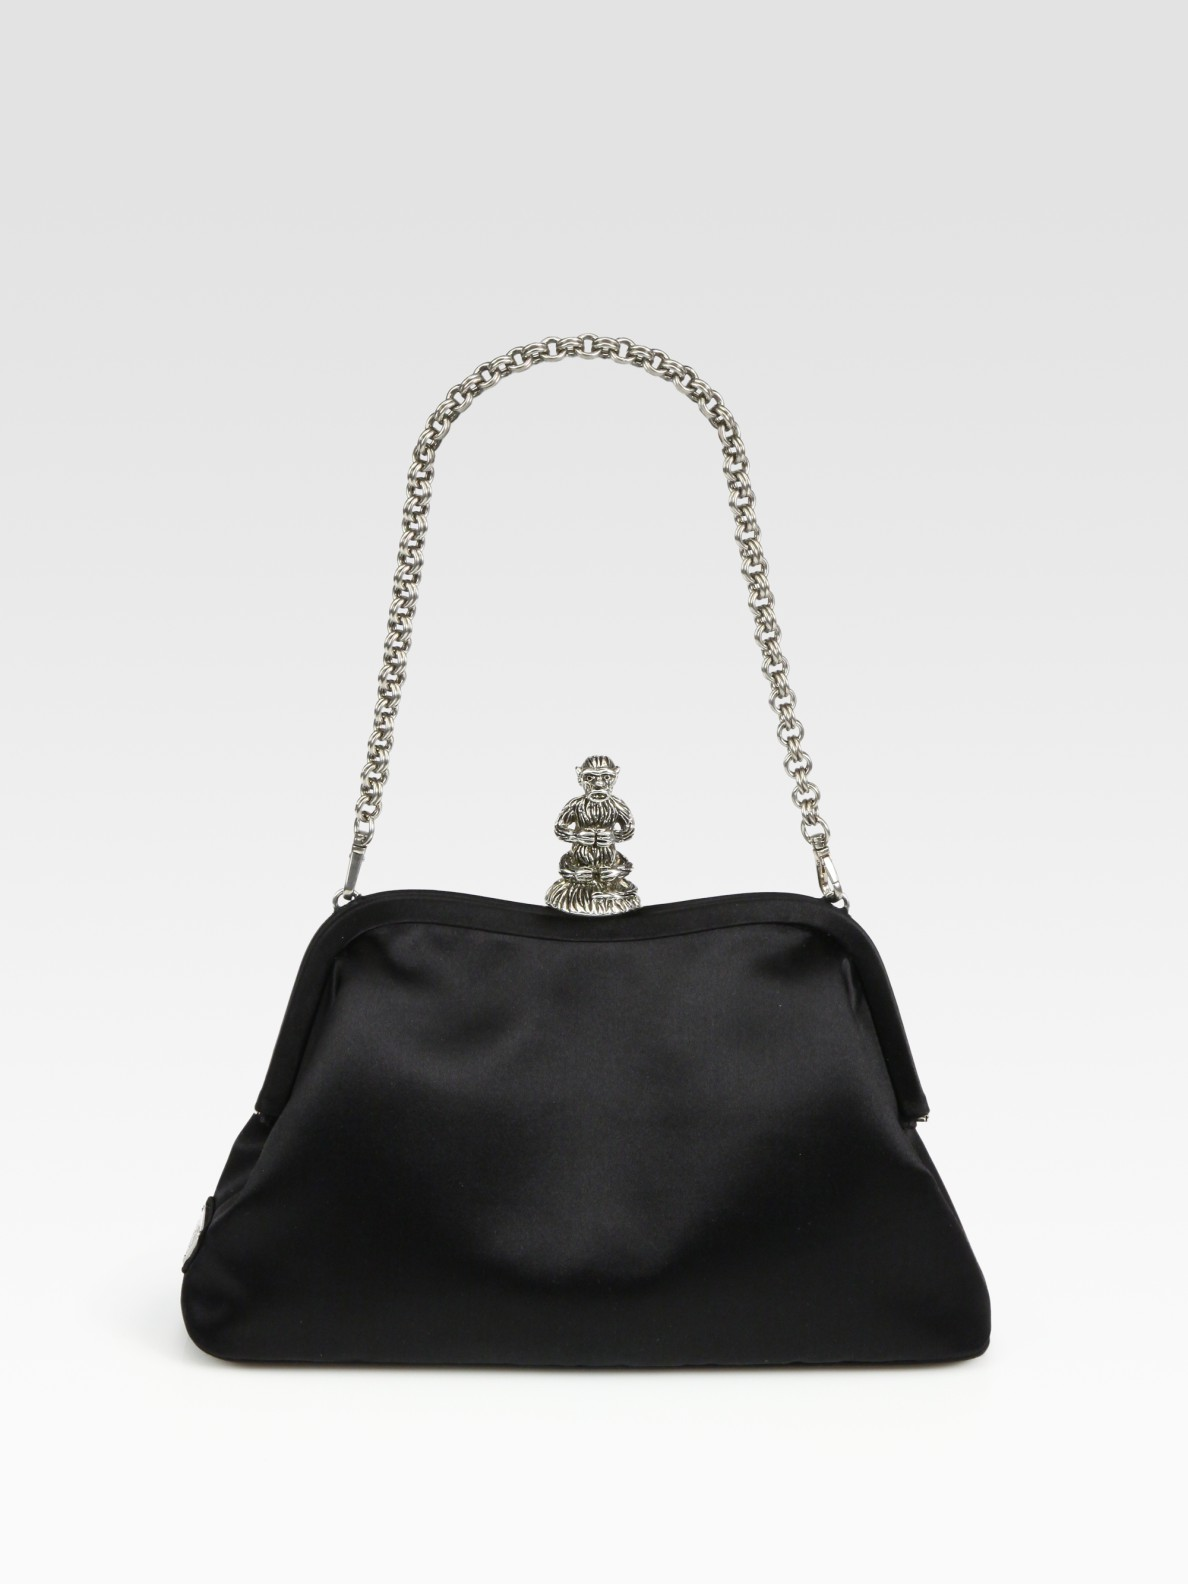 Prada Raso Satin Bag with Monkey Closure in Black | Lyst